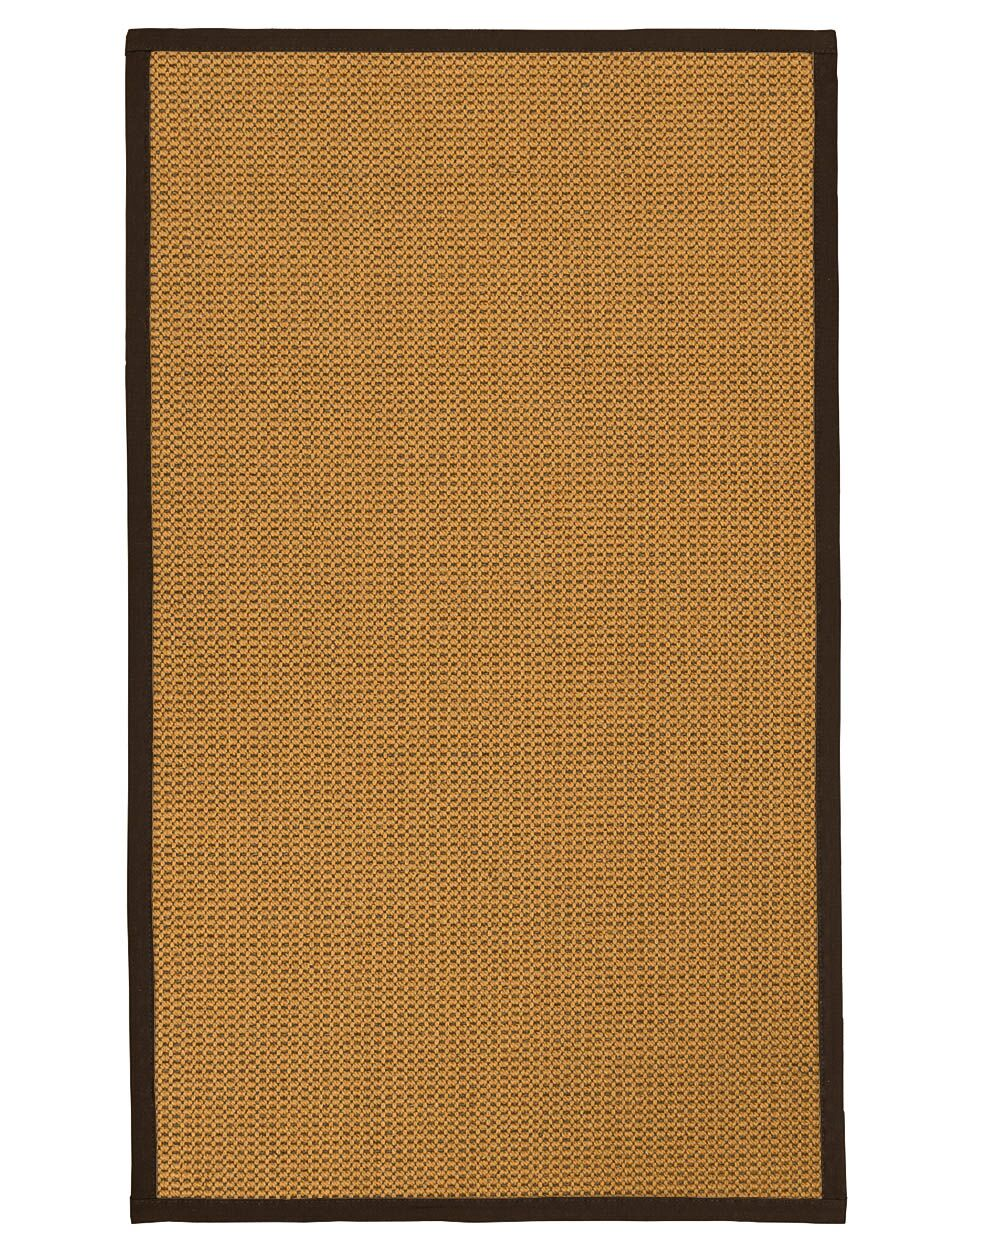 Atia Fiber Hand Woven Sisal Brown/Fudge Area Rug Rug Size: Rectangle 3' x 5'